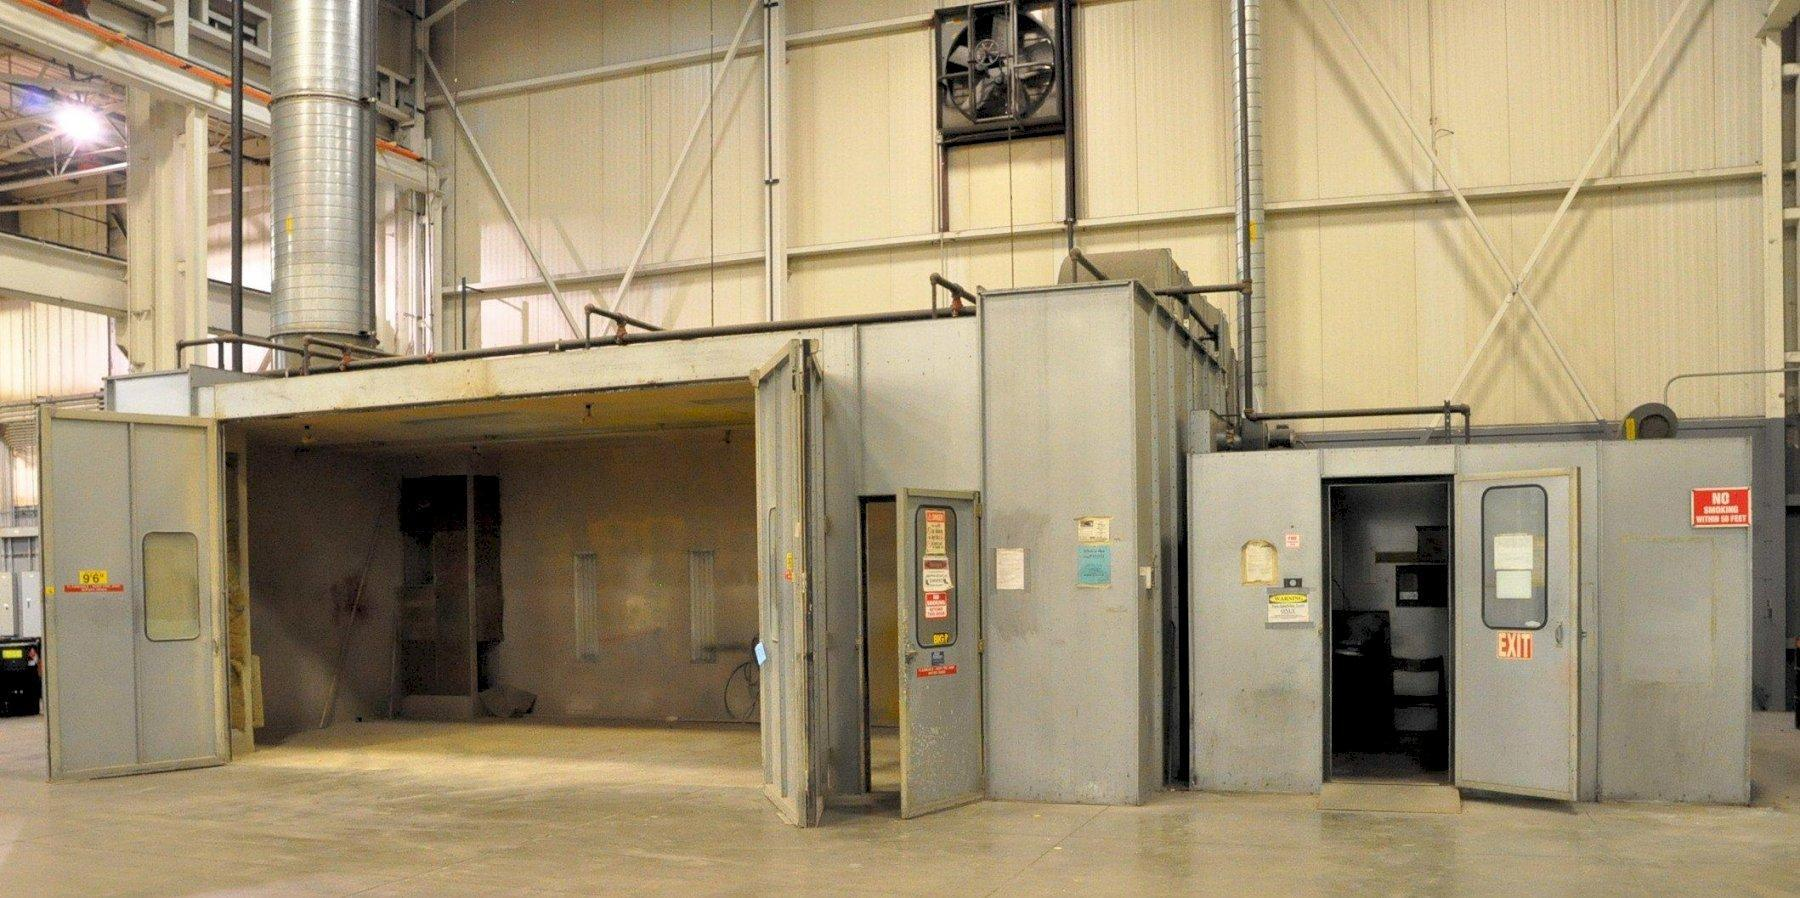 USED SPRAY SYSTEMS WATER COLUMN STYLE ENCLOSED PAINT SPRAY BOOTH, STK# 10661